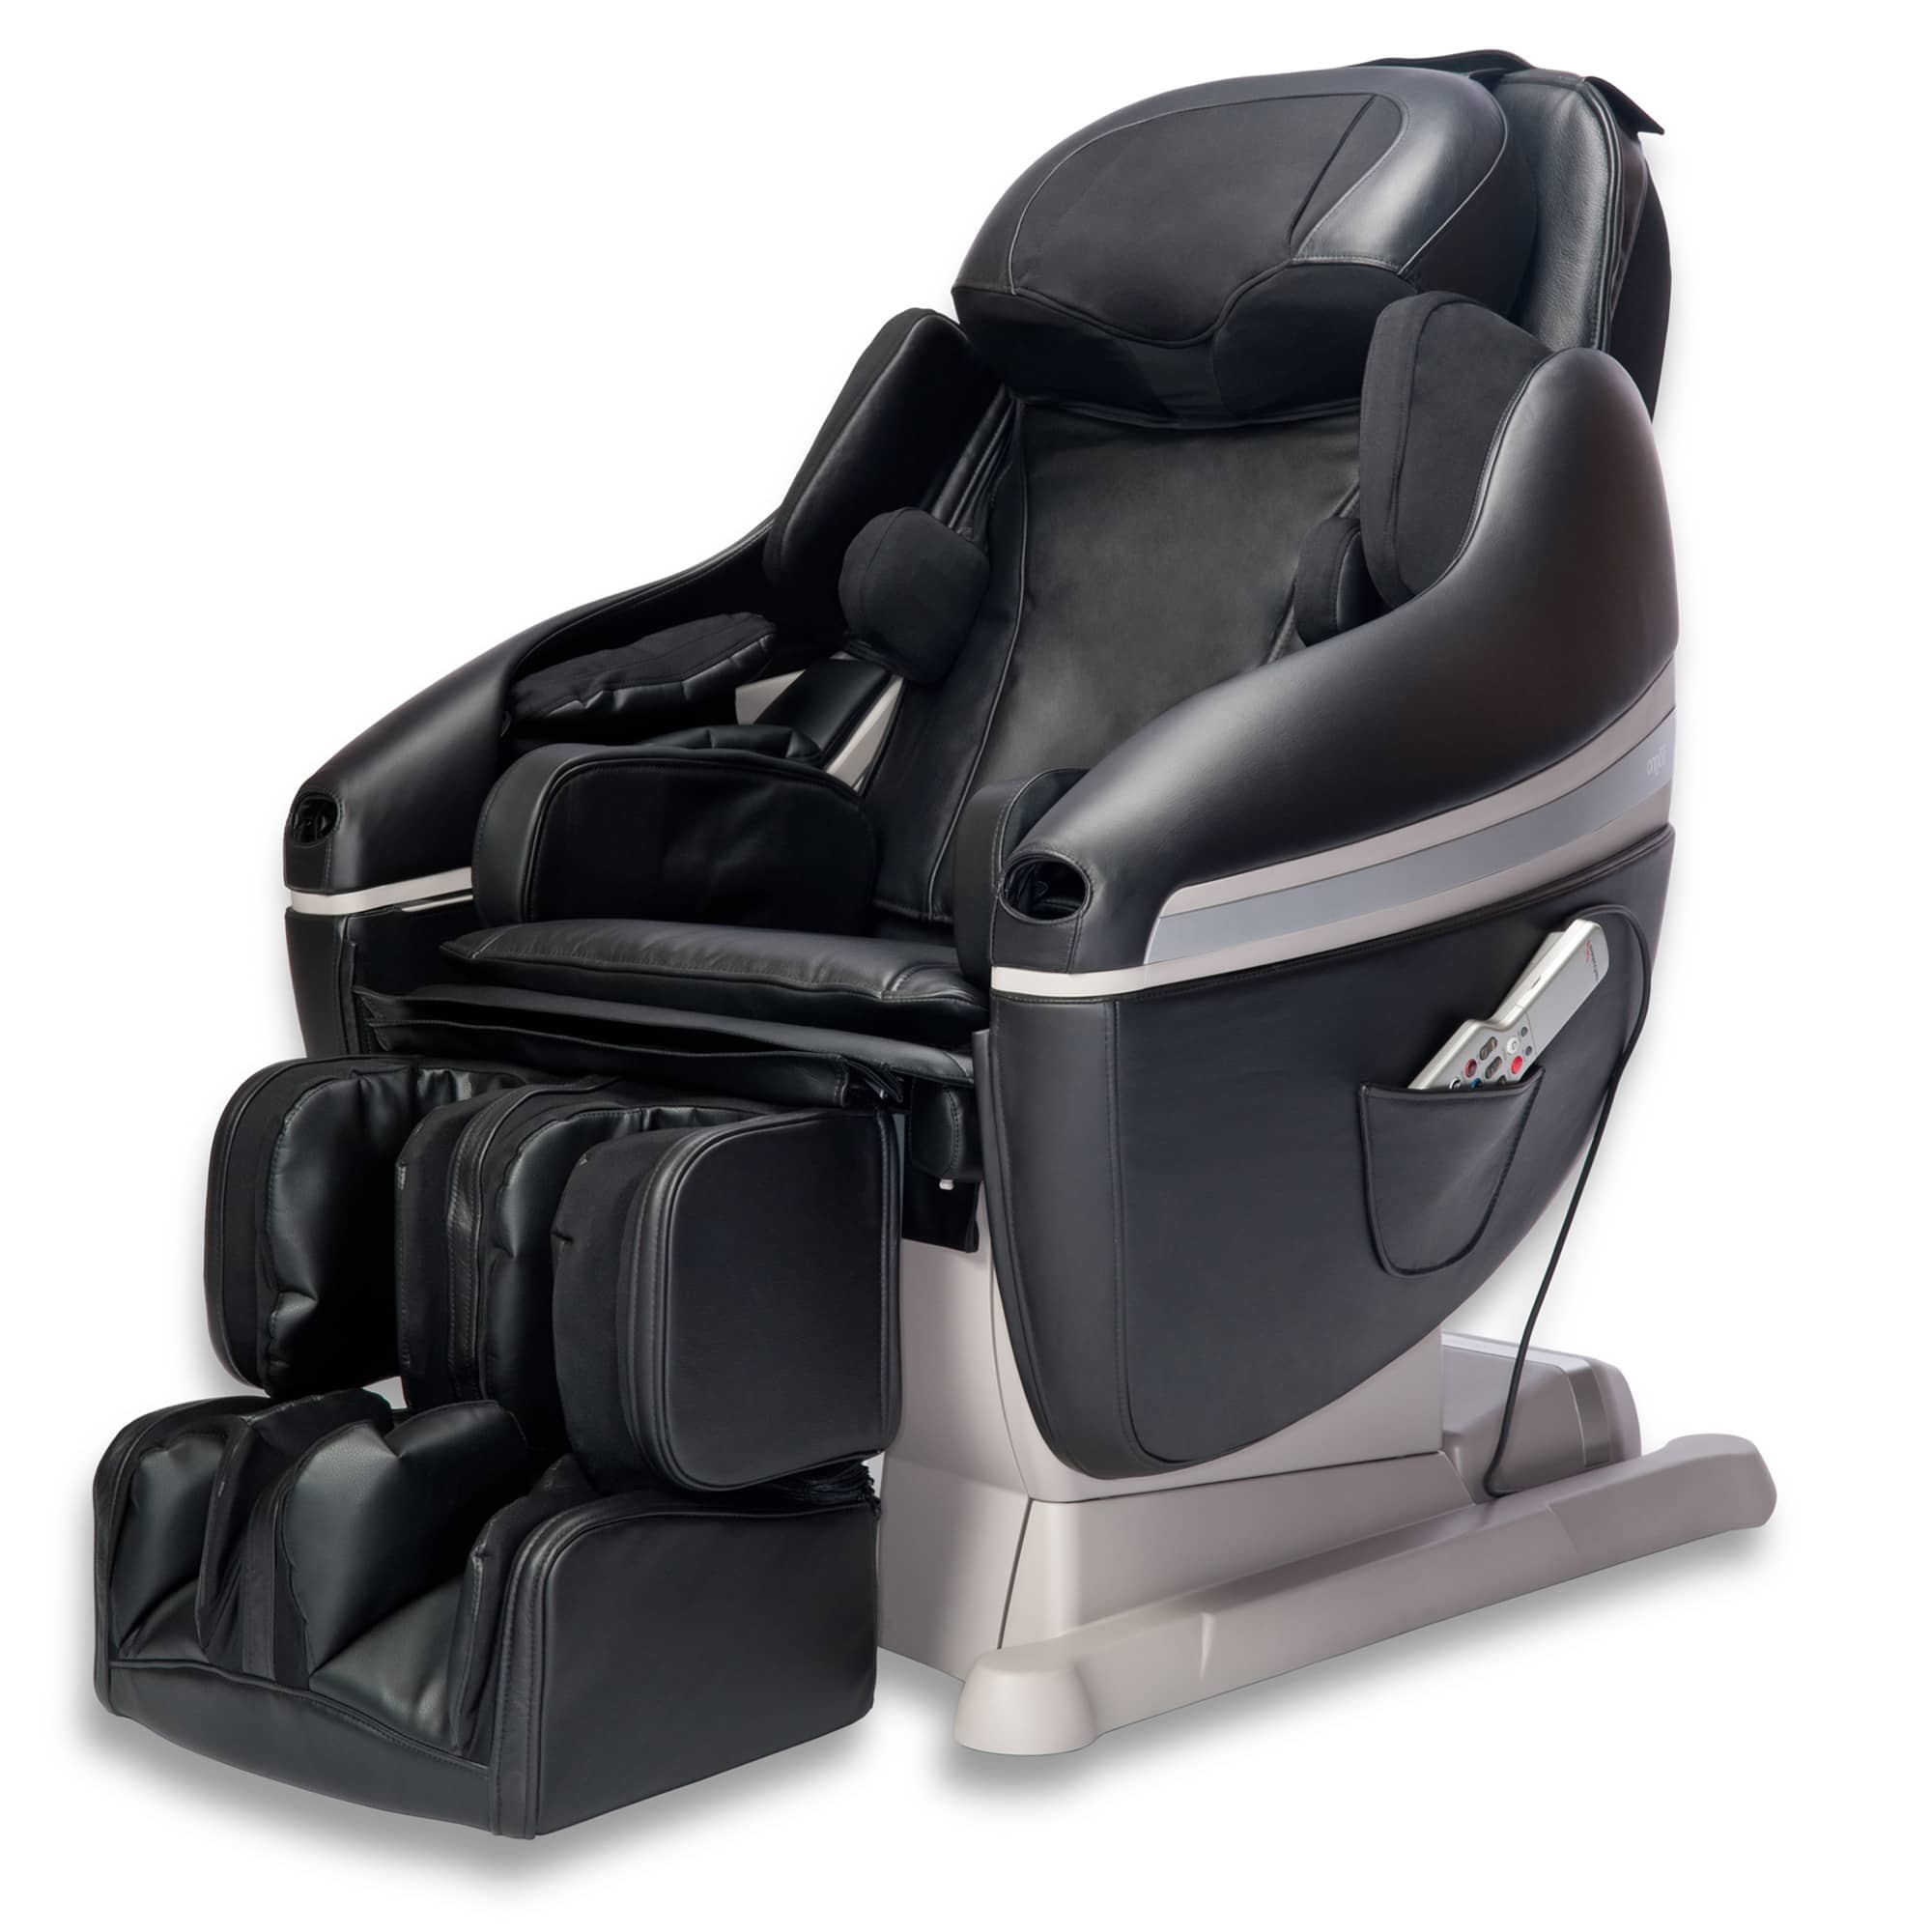 Nest Massage Chair Find the Perfect Option for Your Home